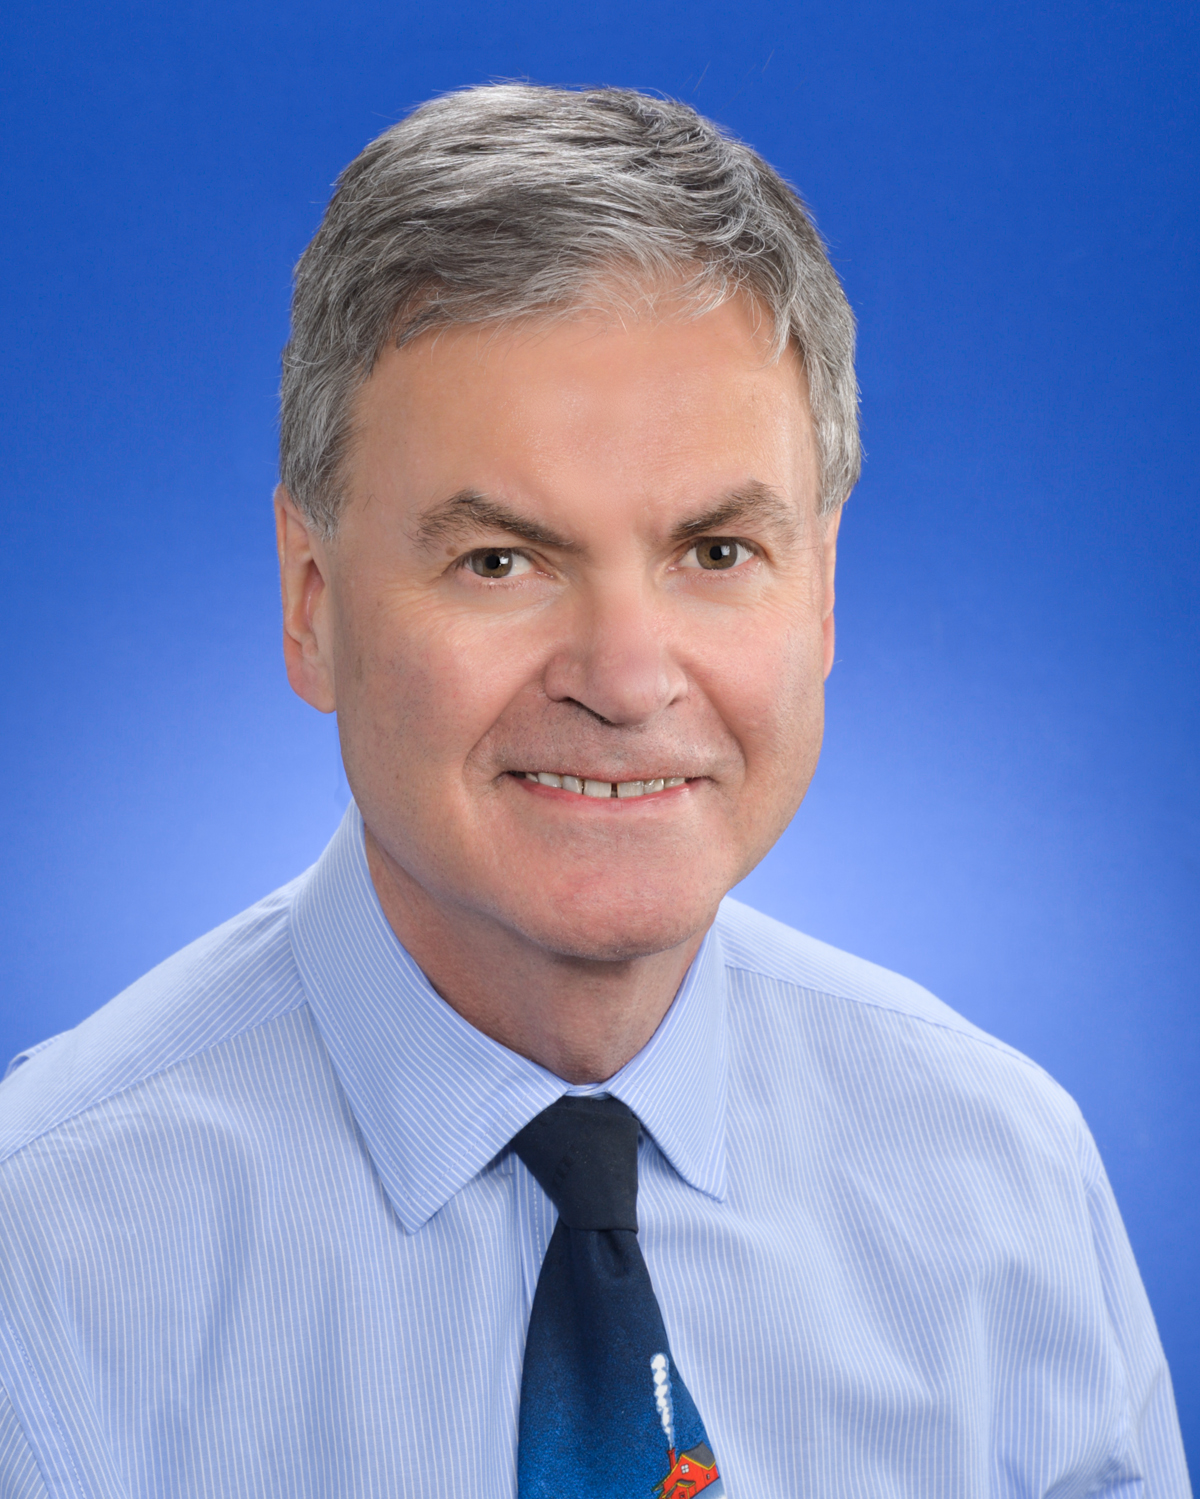 Bernard McGarvey, Ph.D., Technical Advisor